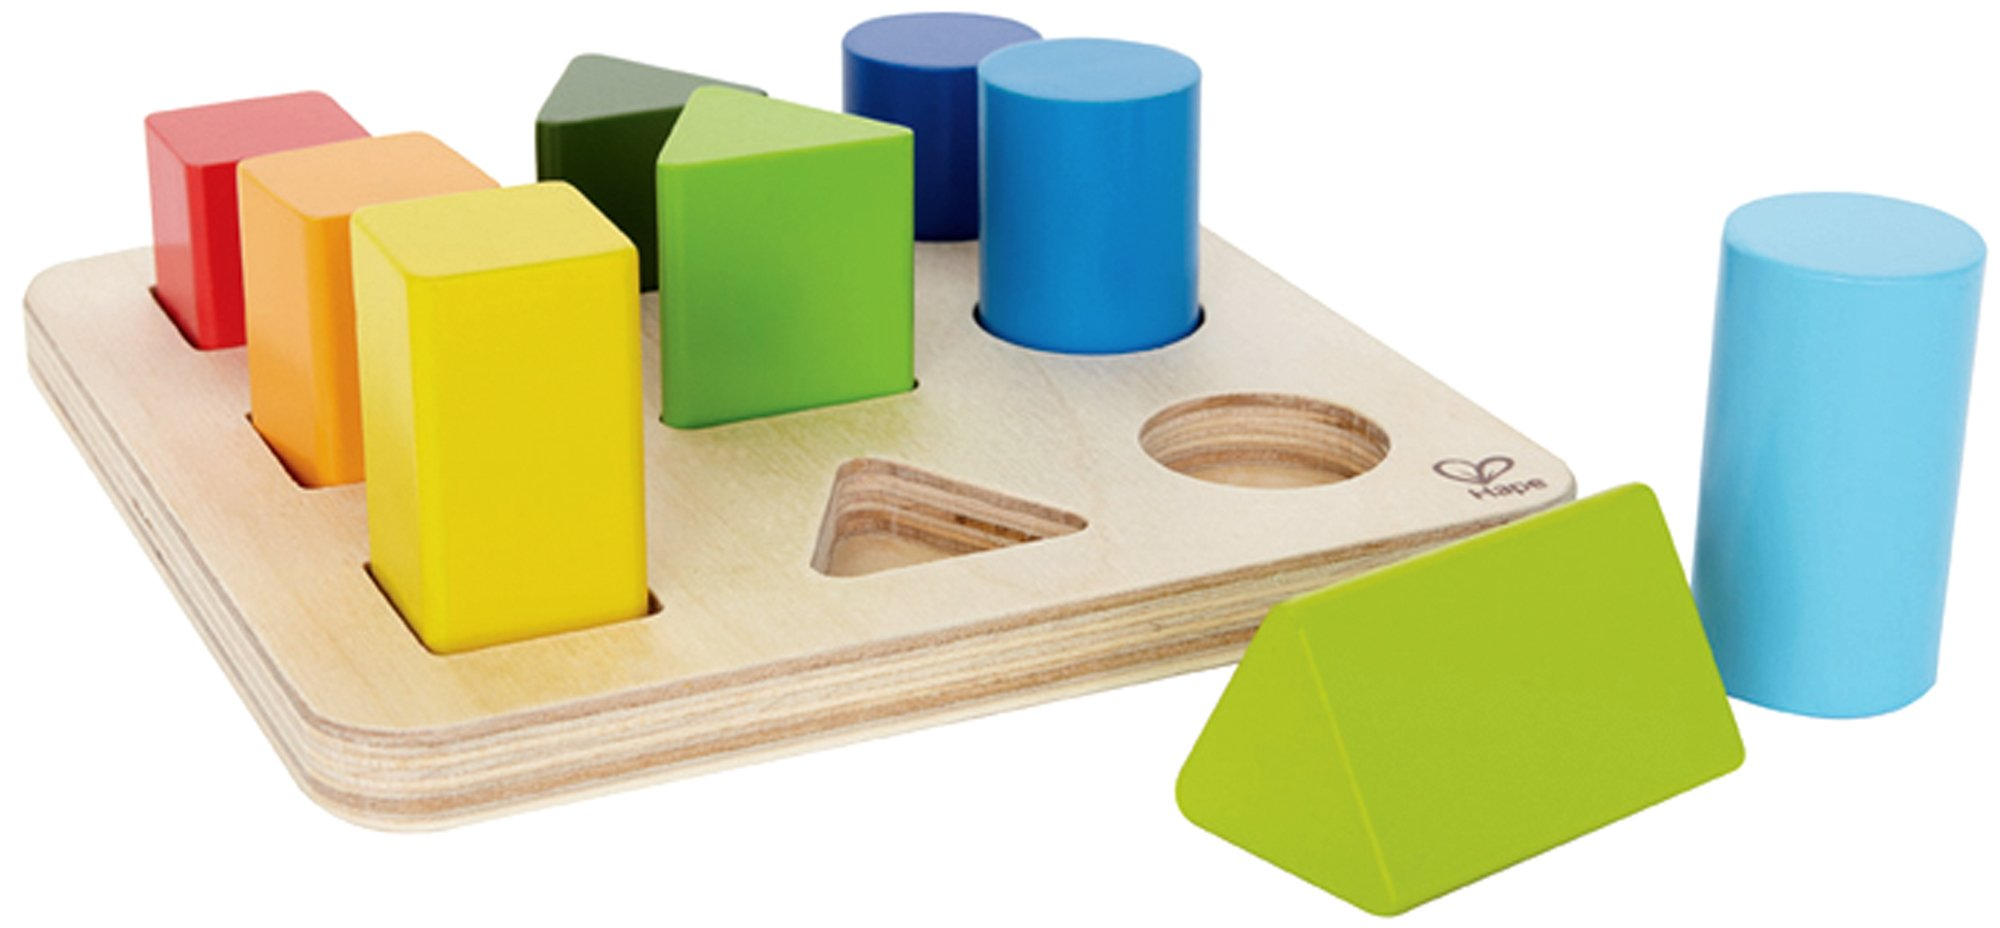 Hape Color and Shape Wooden Block Sorter by Hape (Image #3)